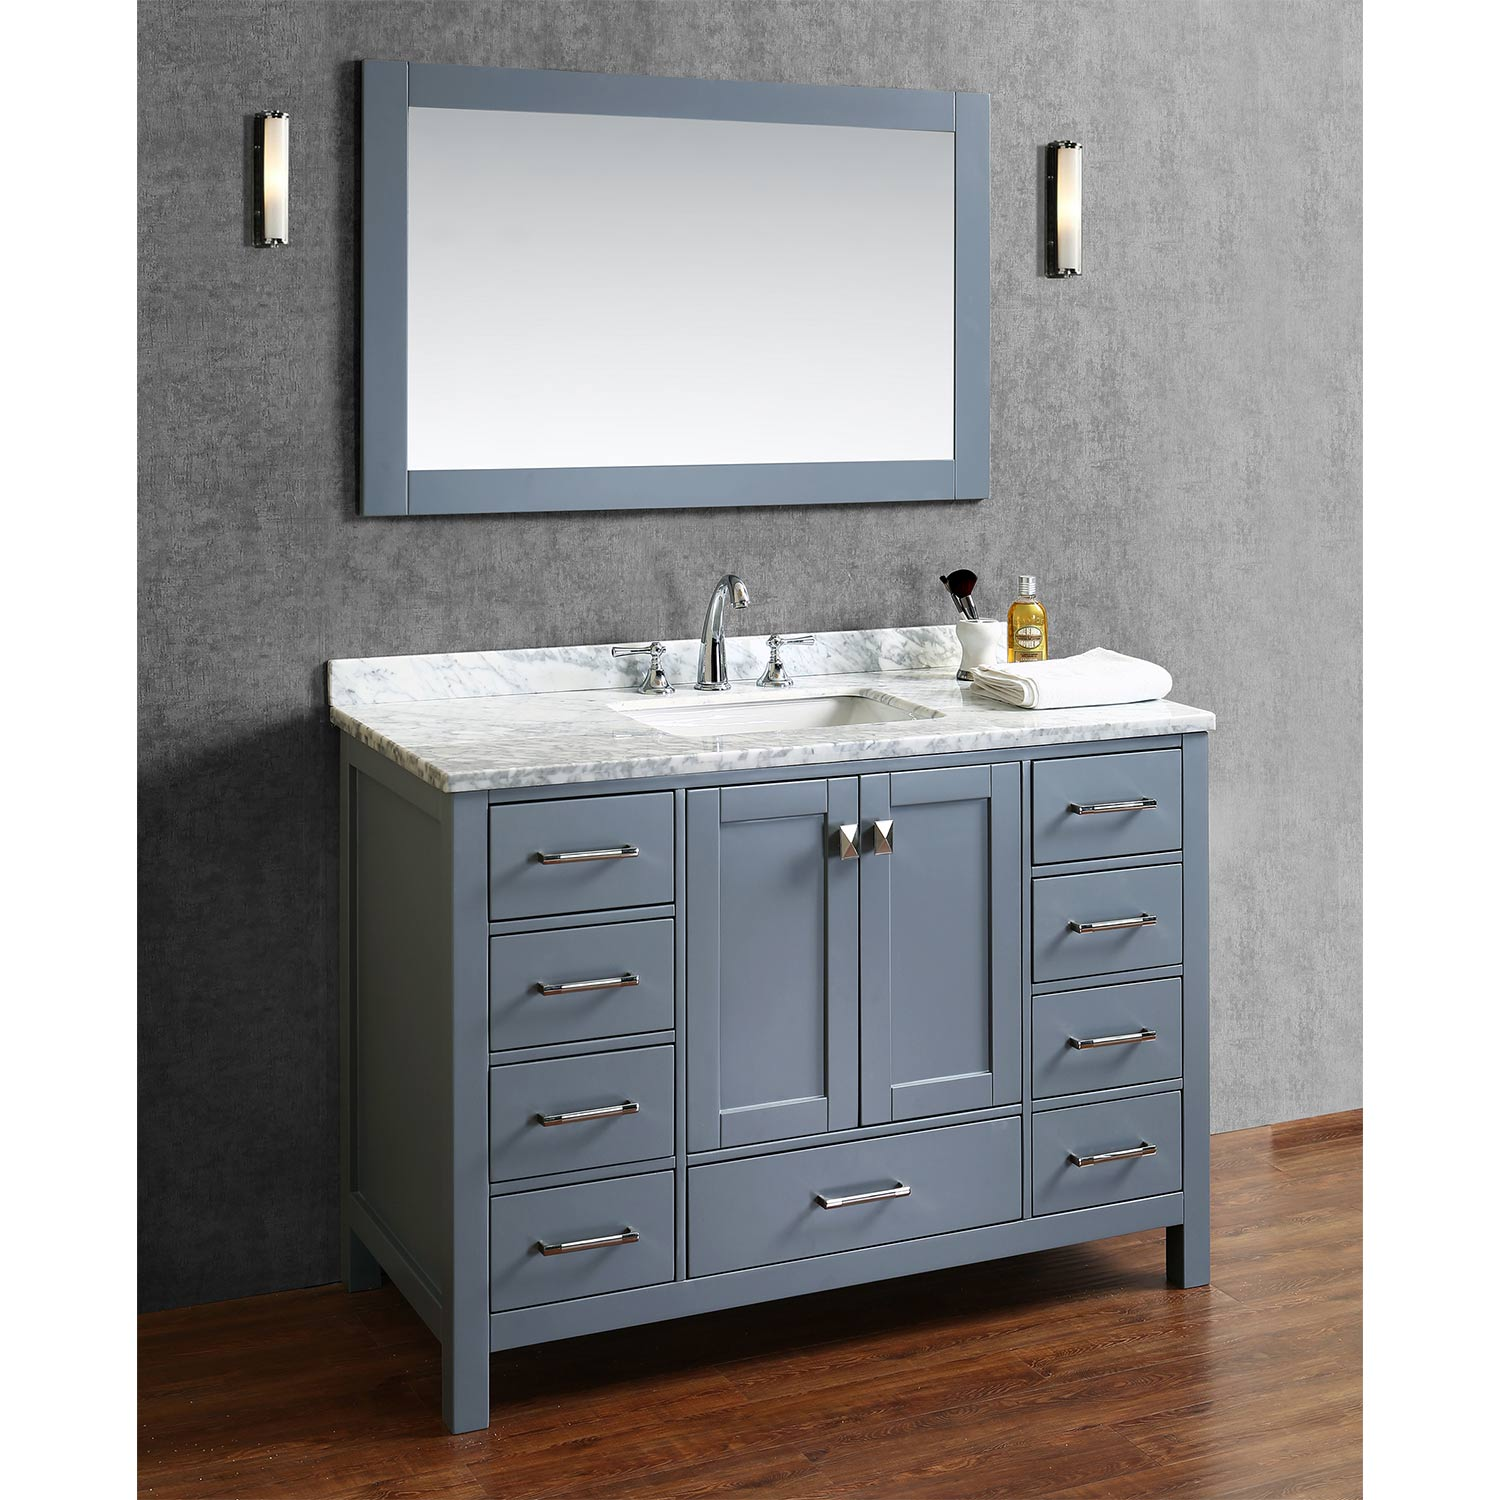 esp in vanity bathroom vanities wmsq hm buy wood solid single inch antonia espresso